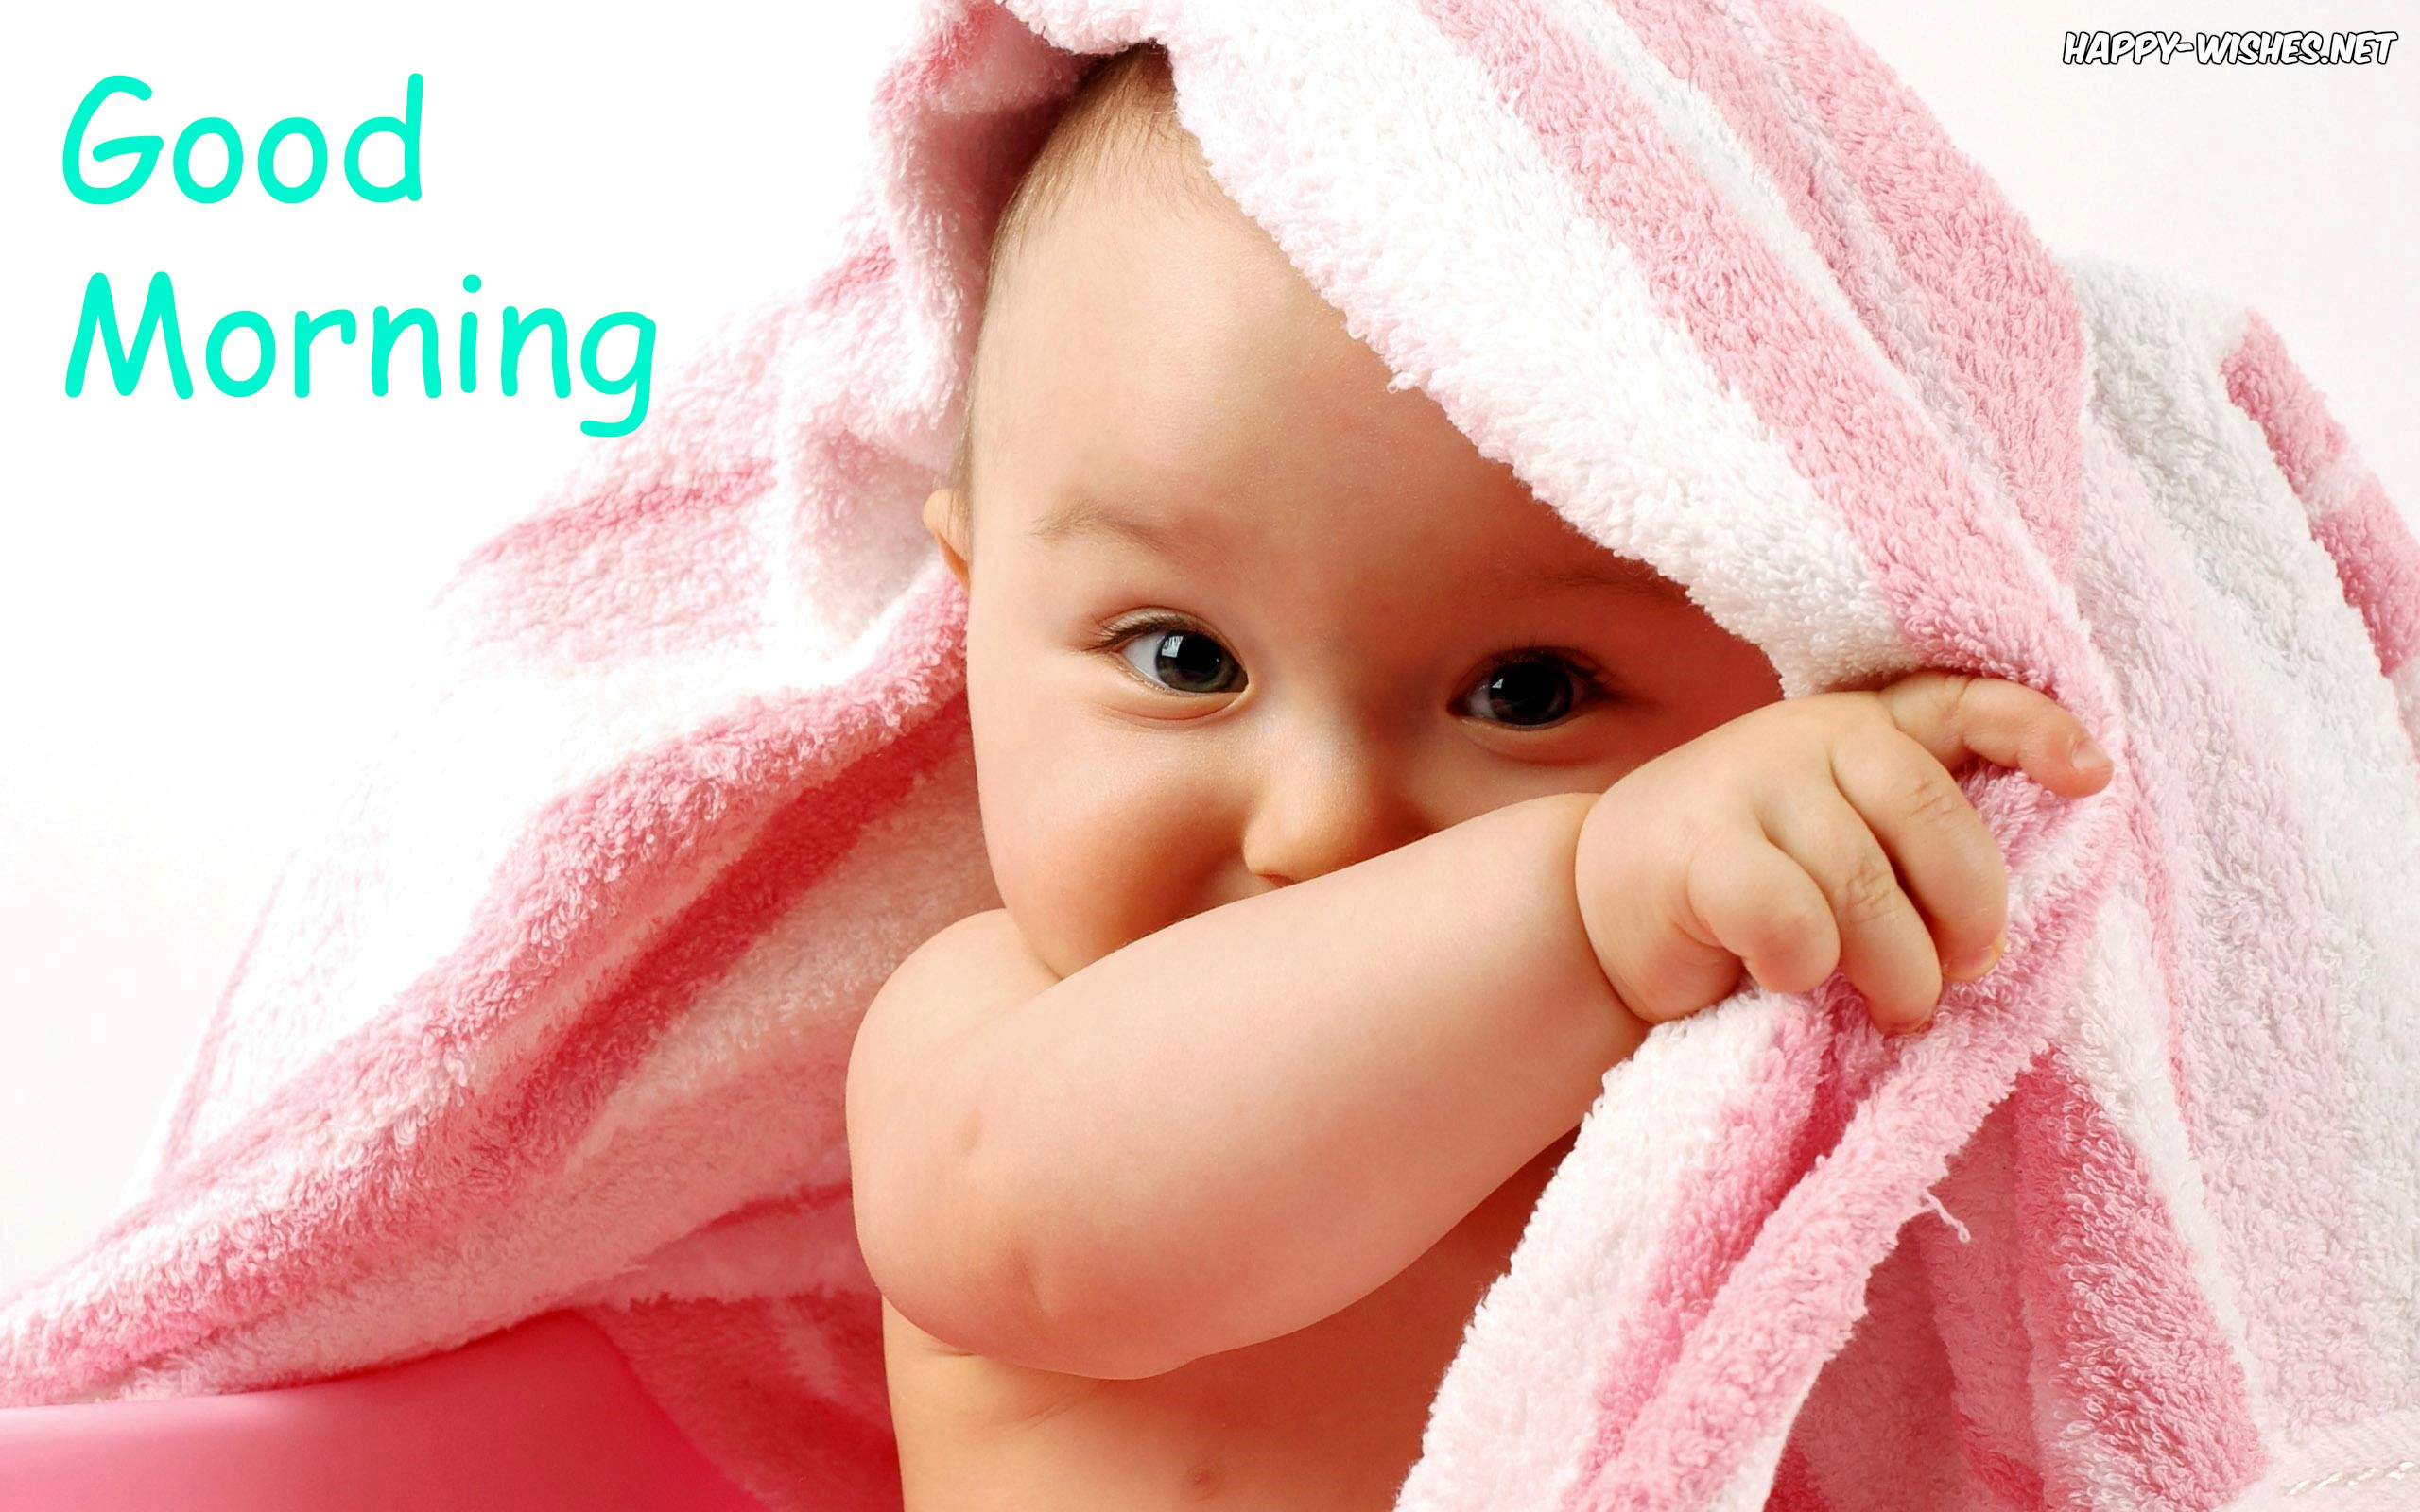 Best Good Morning Baby images